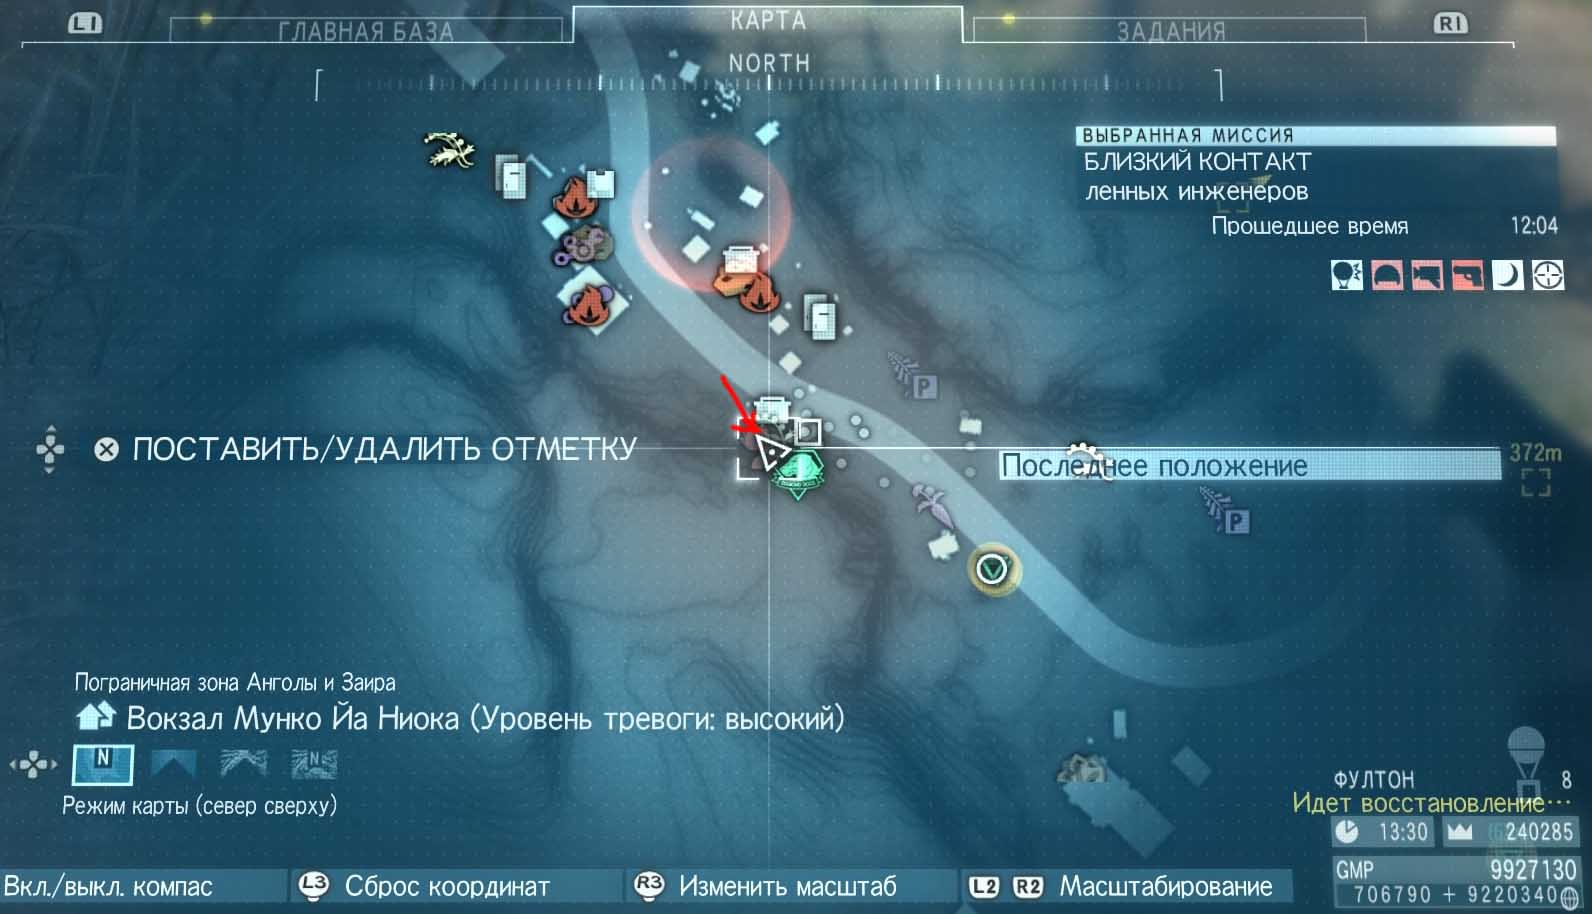 Metal Gear Solid V: The Phantom Pain Возле вокзала Мунко Йа Ниока собран африканский персик